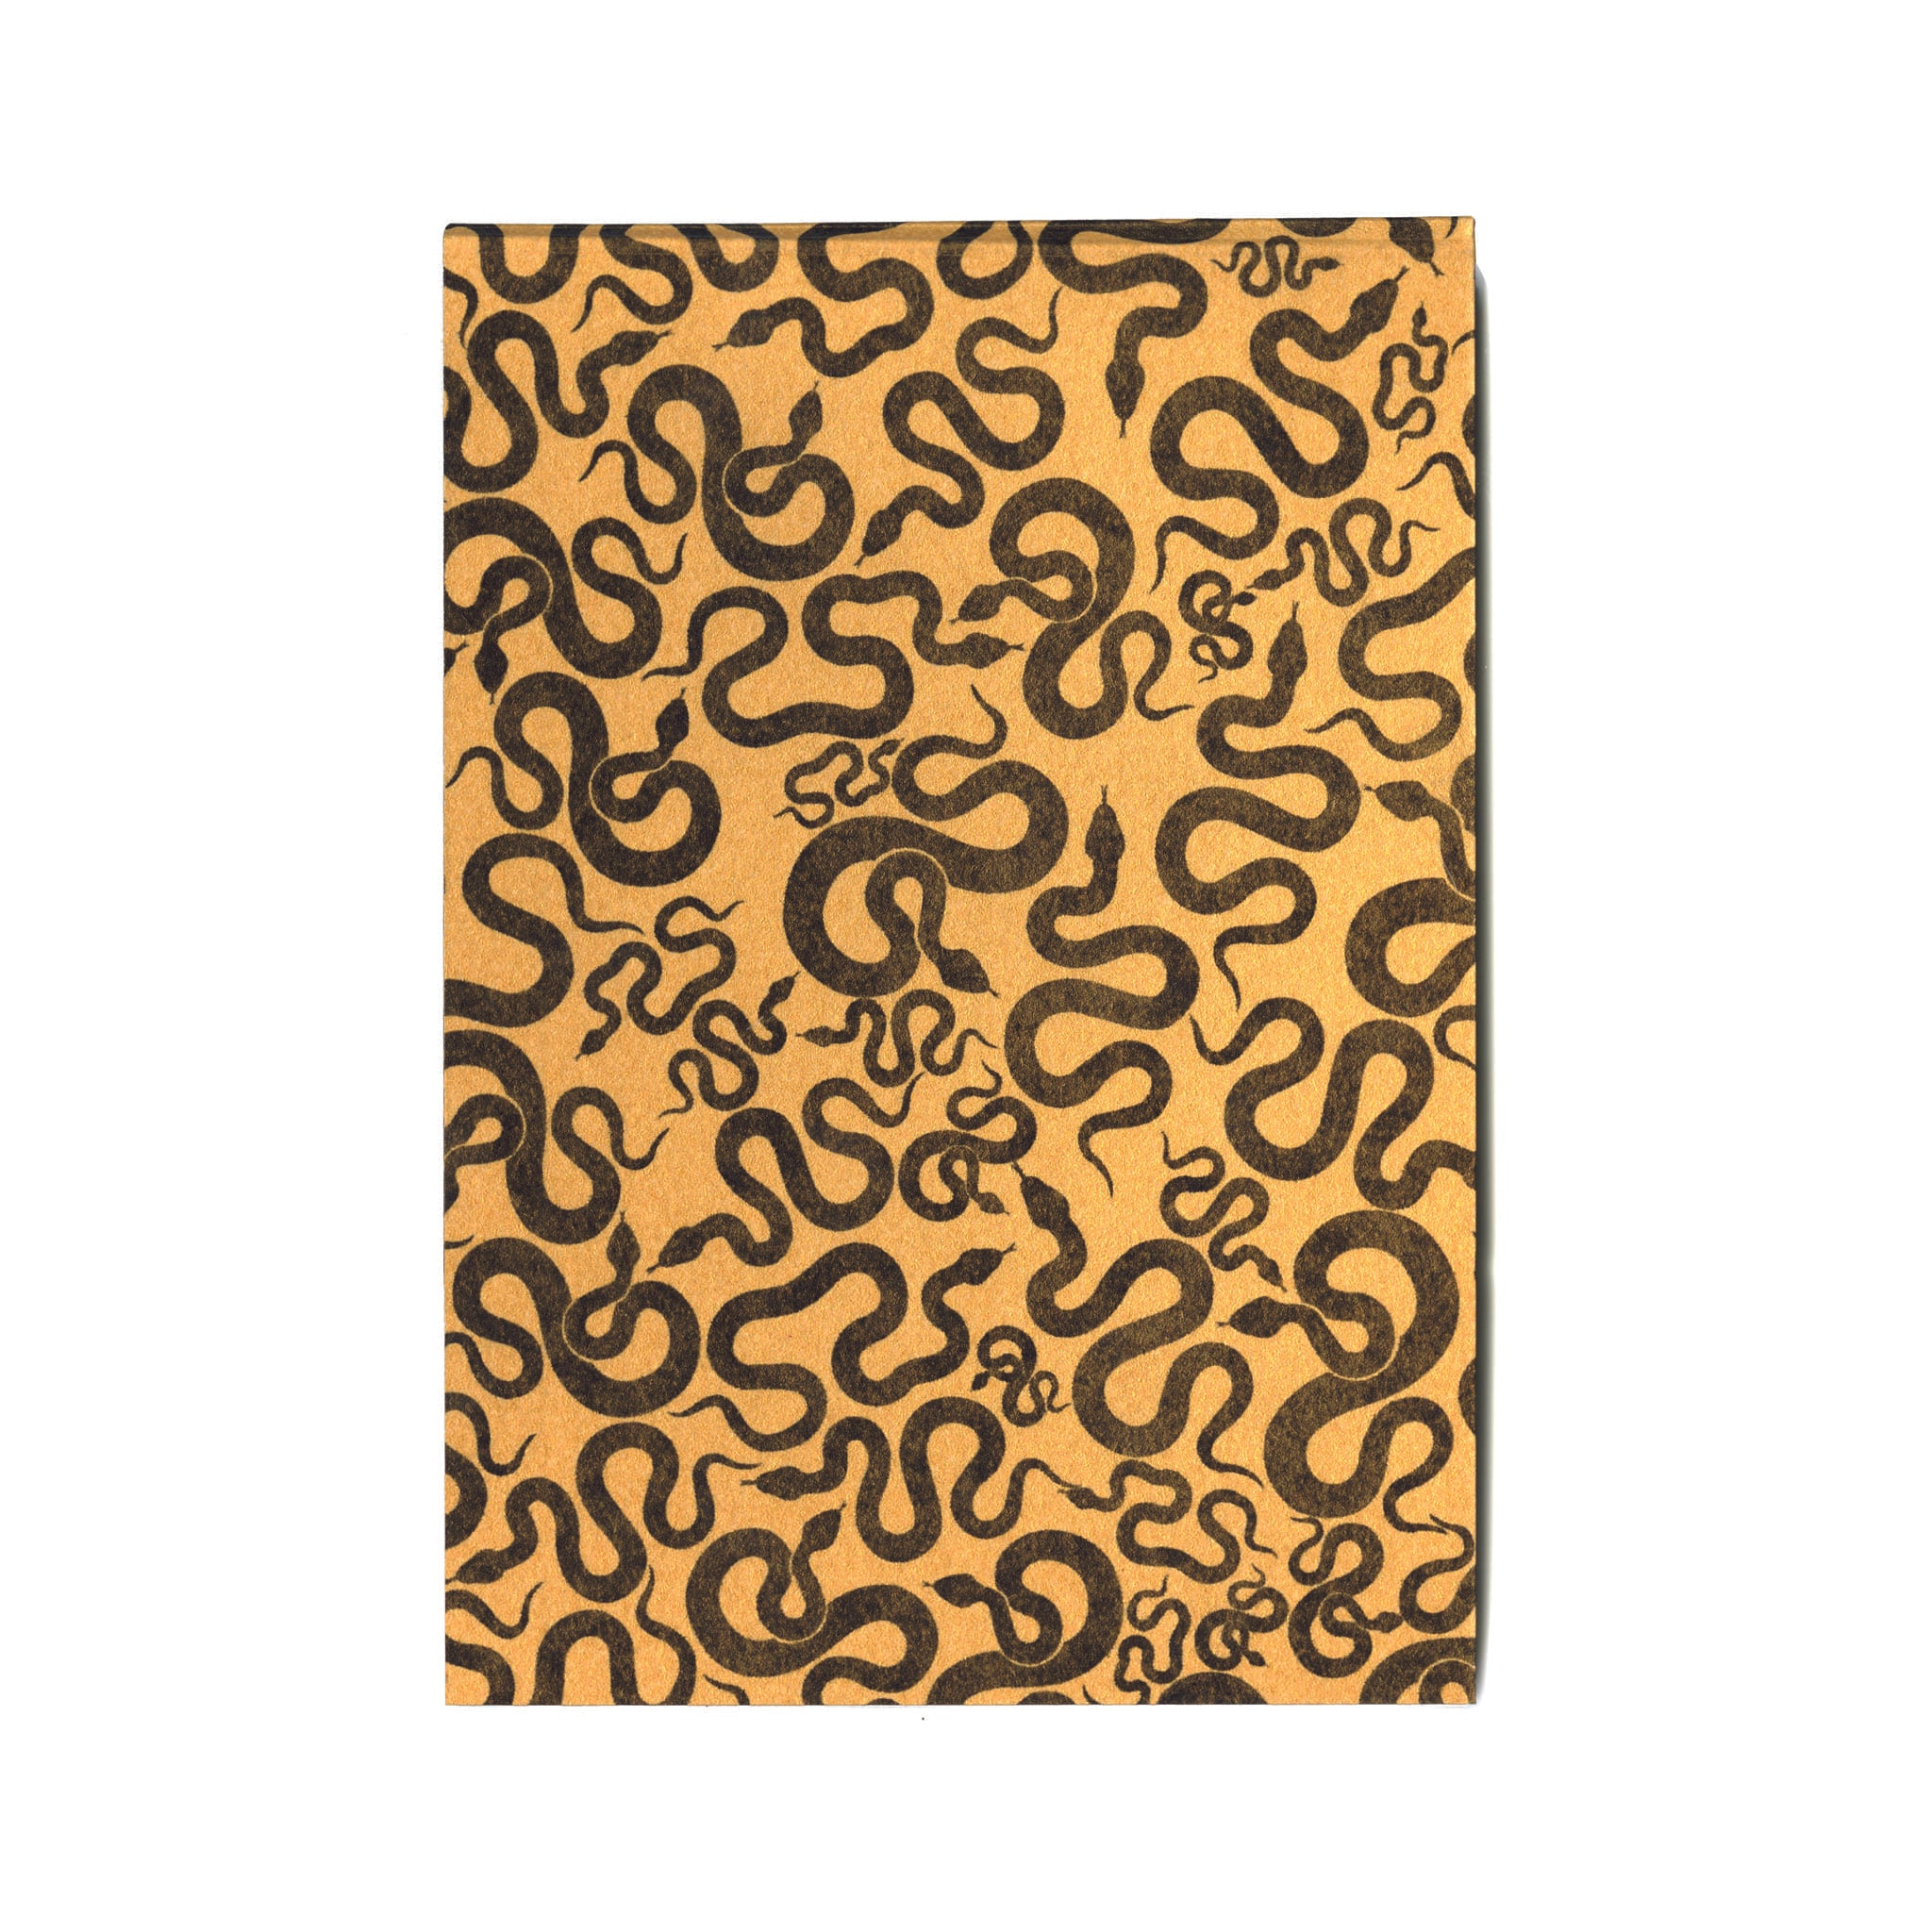 Pocket mini journal with yellow original snake design serpent cover & 100% cotton paper pages